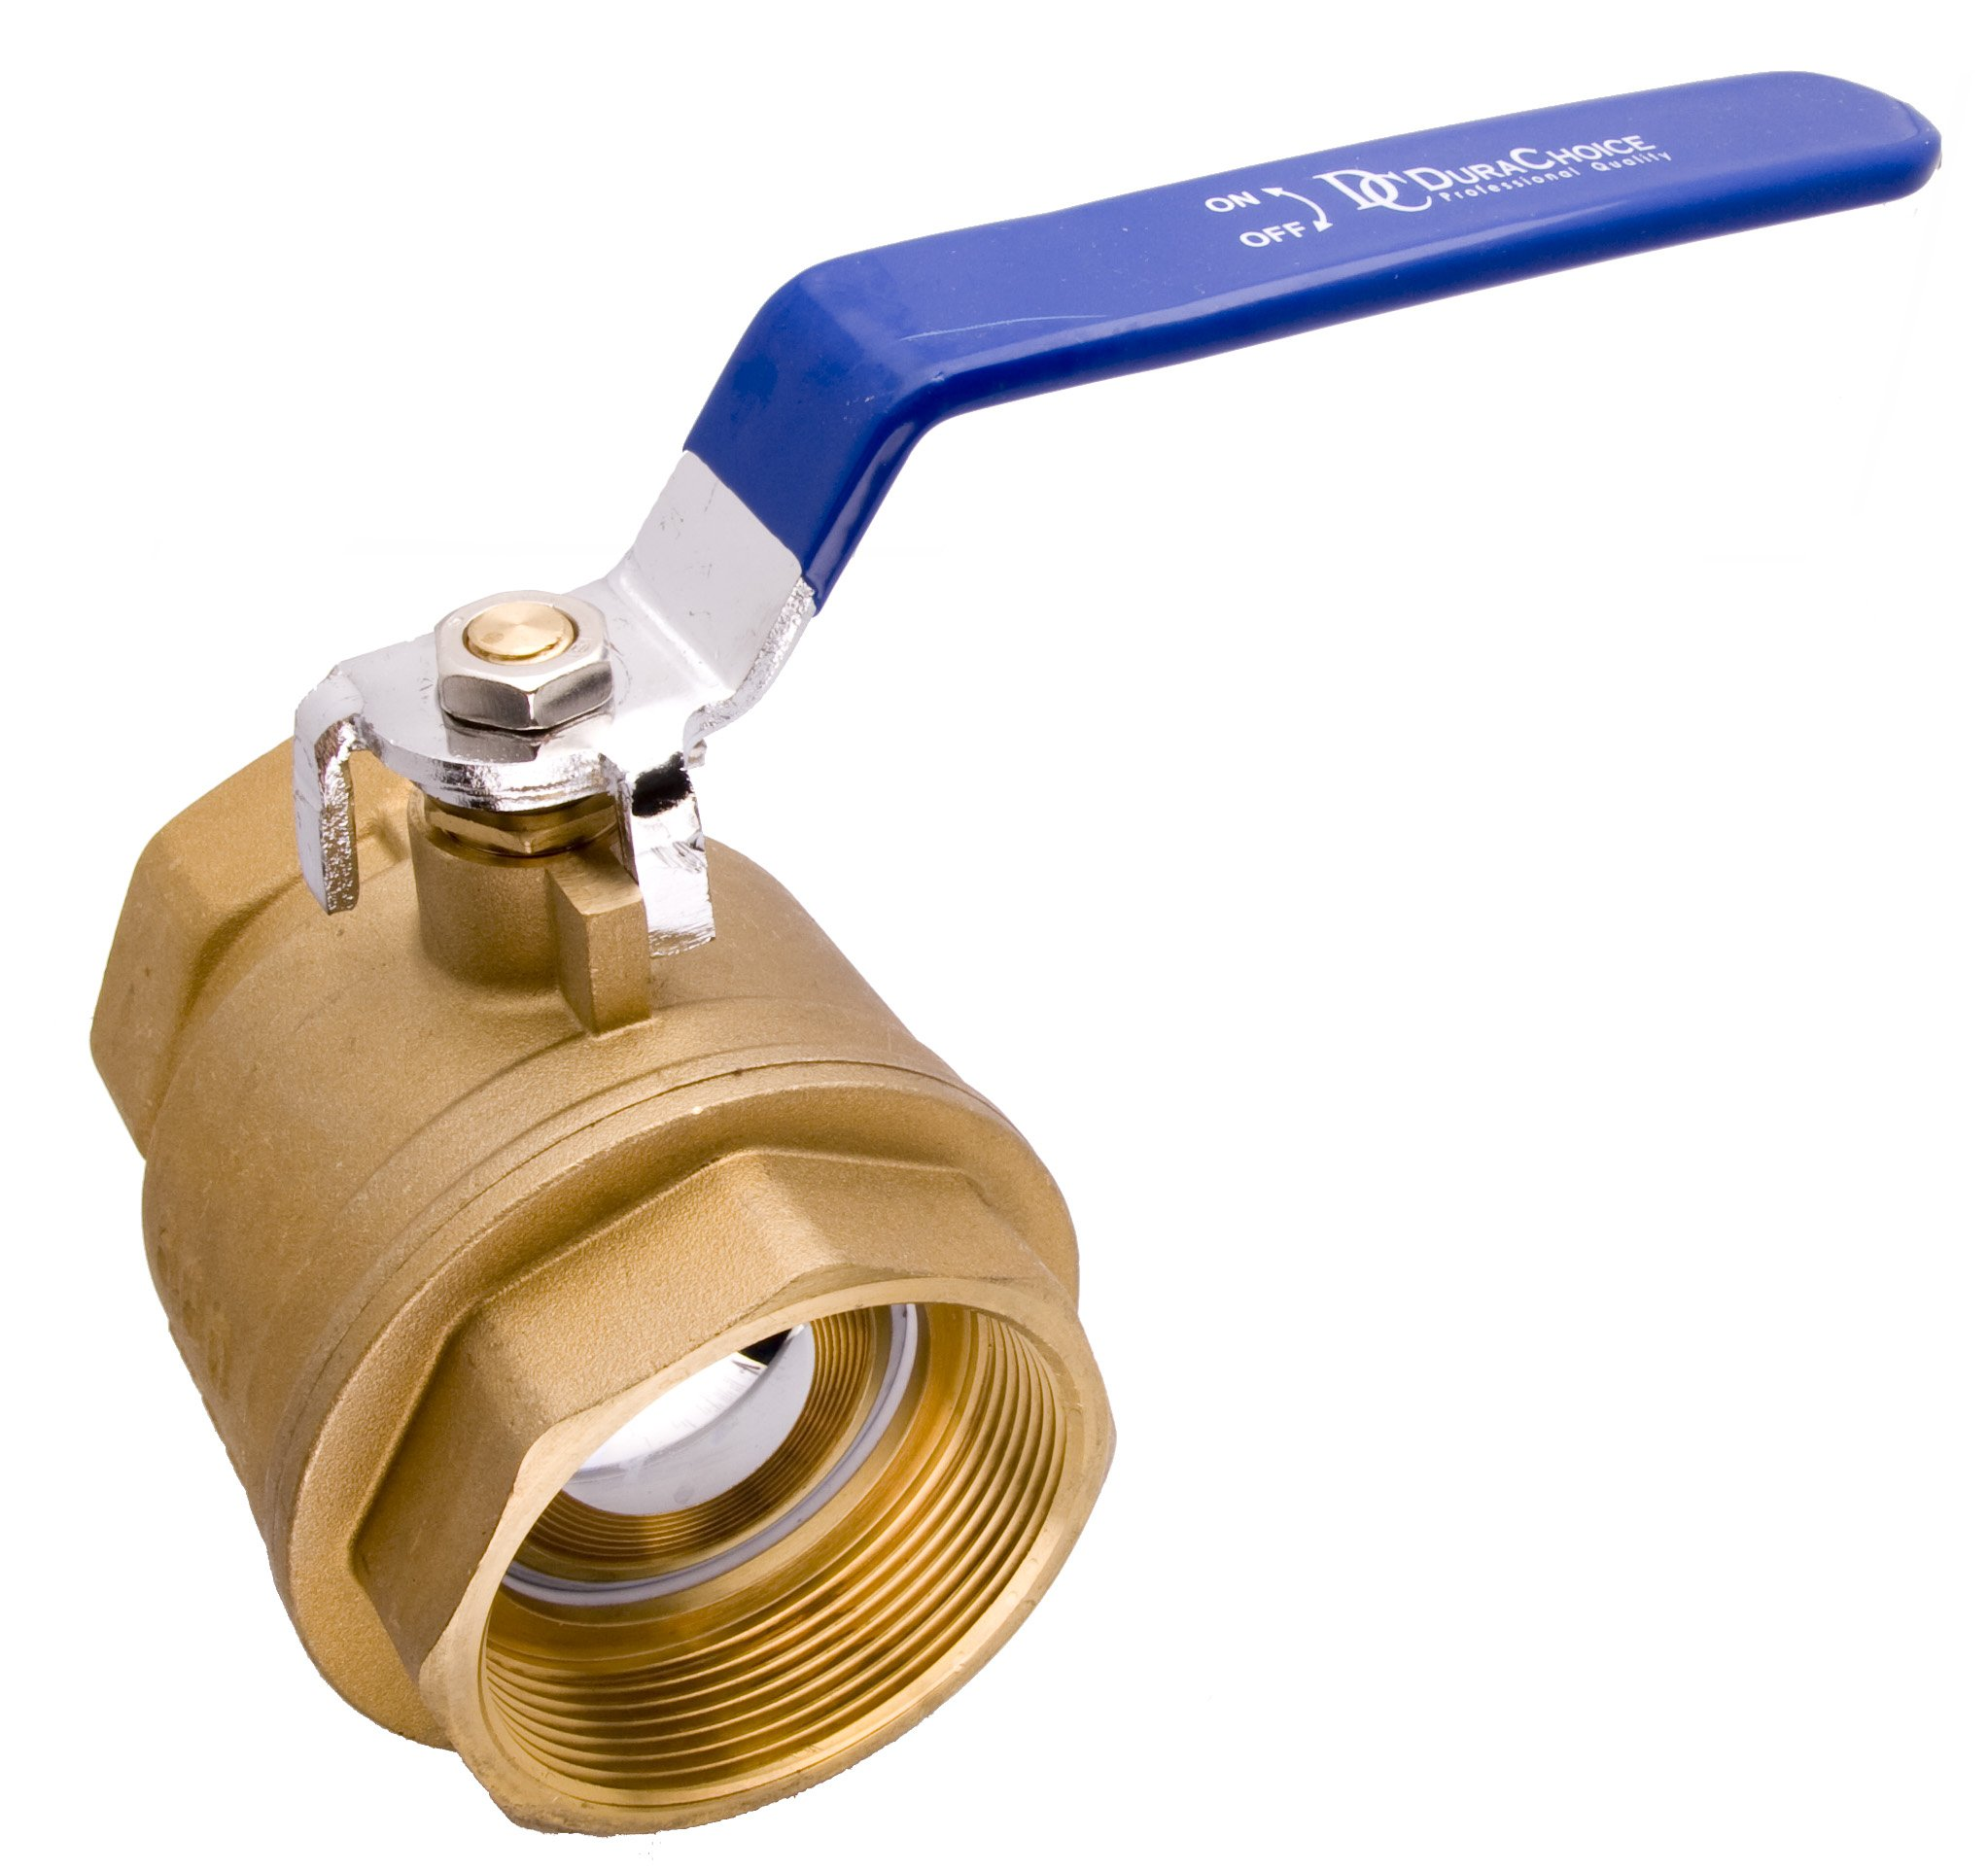 3'' Brass Ball Valve - Full Port 600WOG for Water, Oil, and Gas with Blue Handle